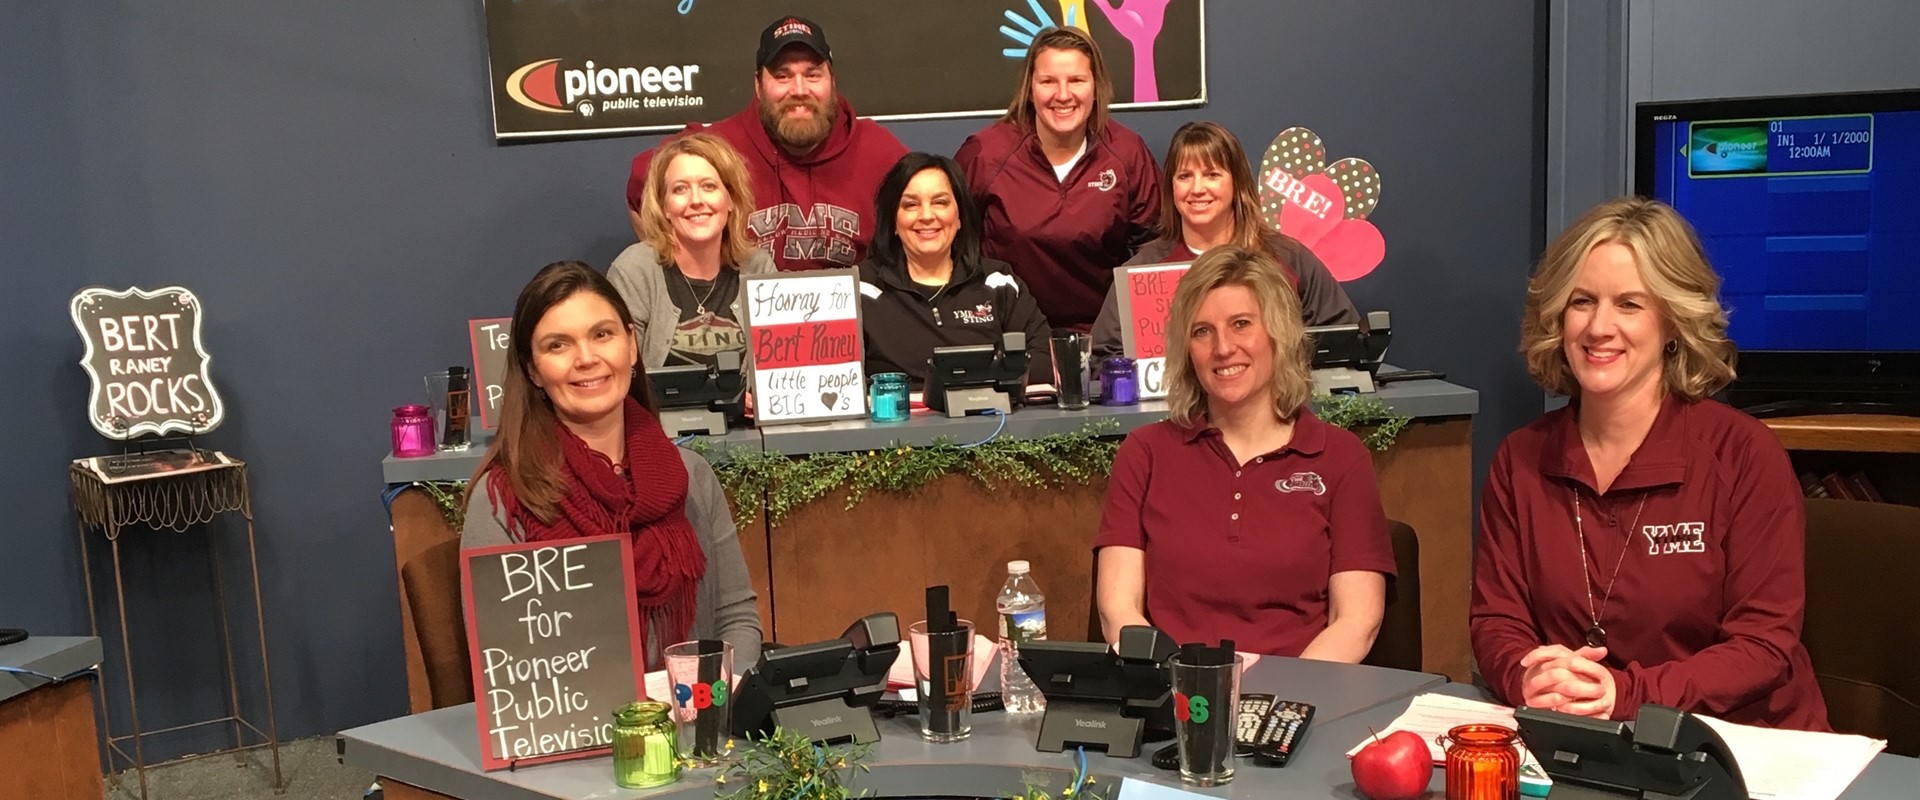 Some BRE Staff volunteered their time at Pioneer Public Television! What a great way to represent BRE!